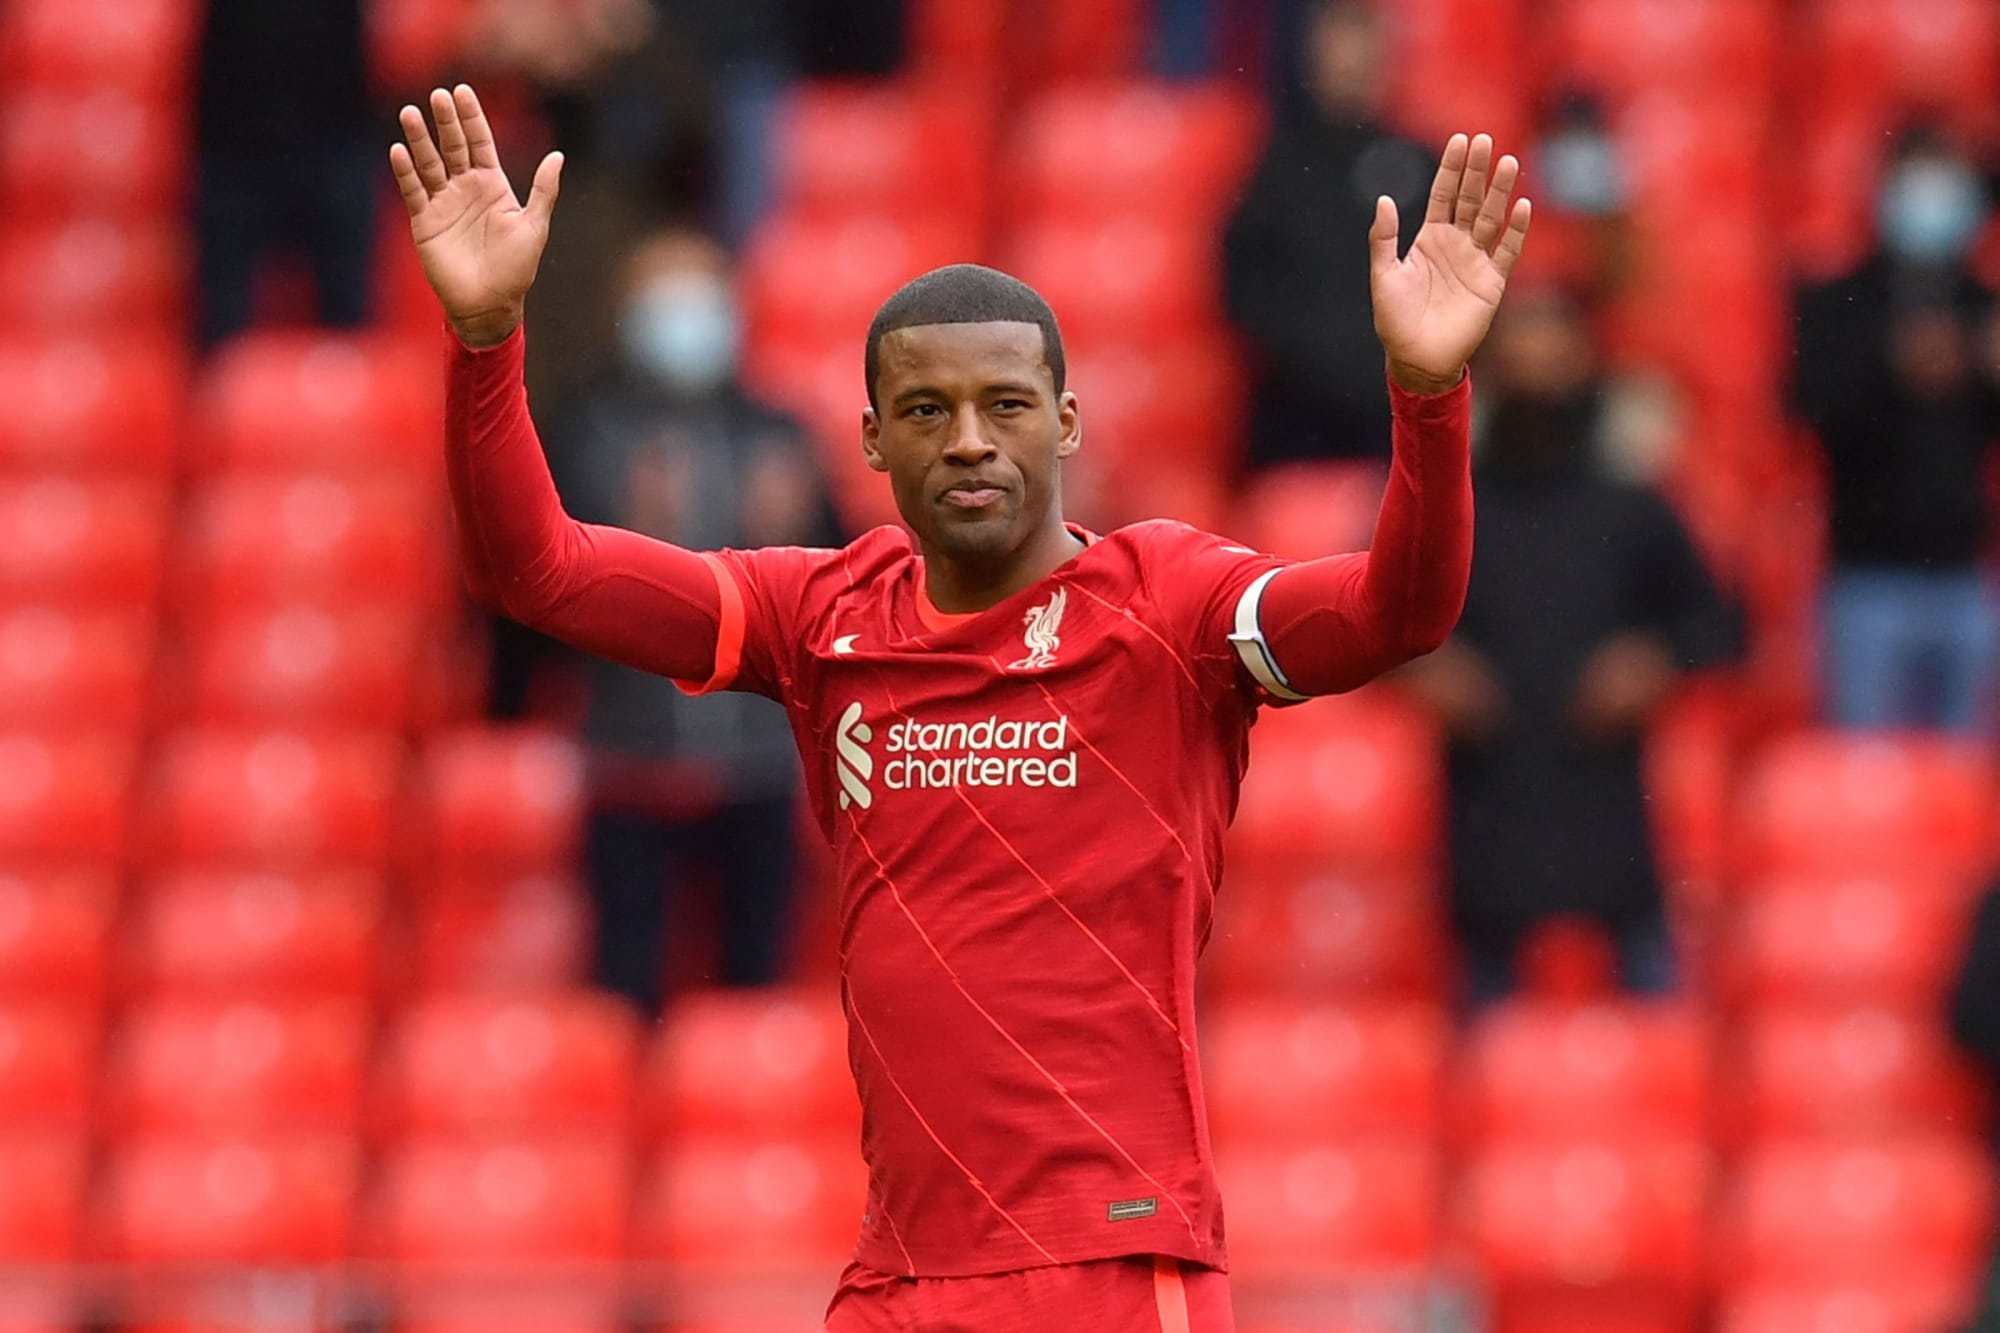 Liverpool: A farewell and thank you to Gini Wijnaldum